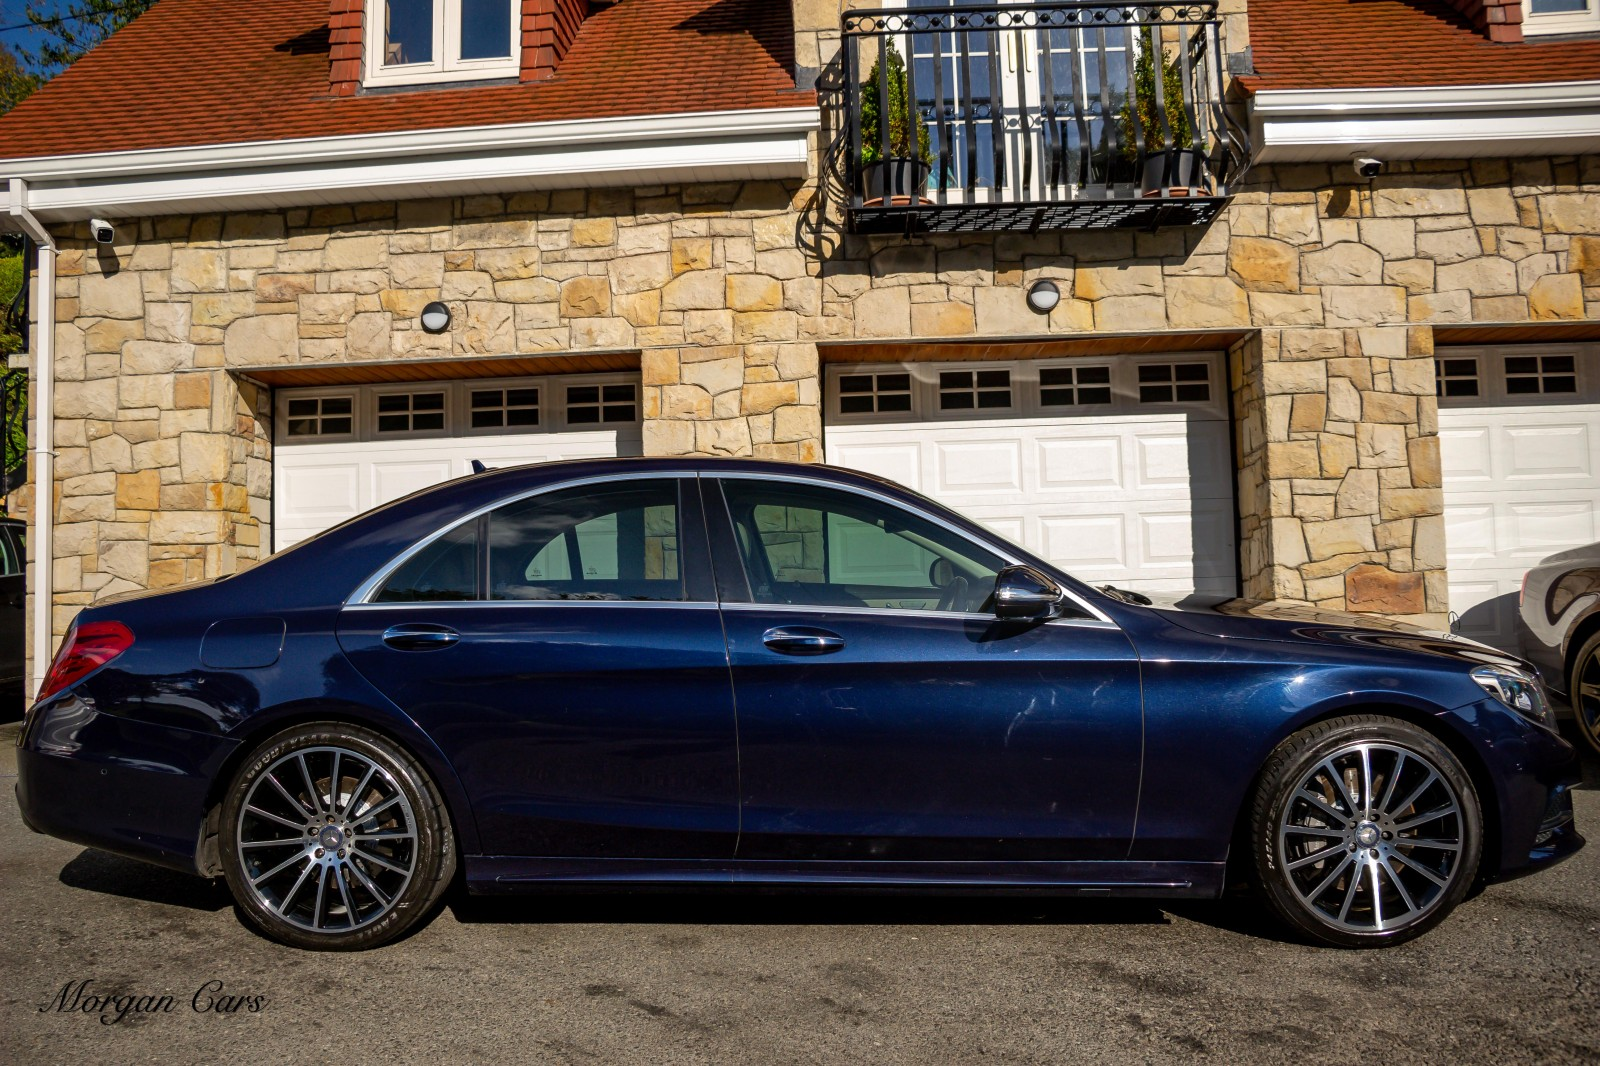 2016 Mercedes-Benz S Class S 350 D AMG LINE Diesel Automatic – Morgan Cars 9 Mound Road, Warrenpoint, Newry BT34 3LW, UK full